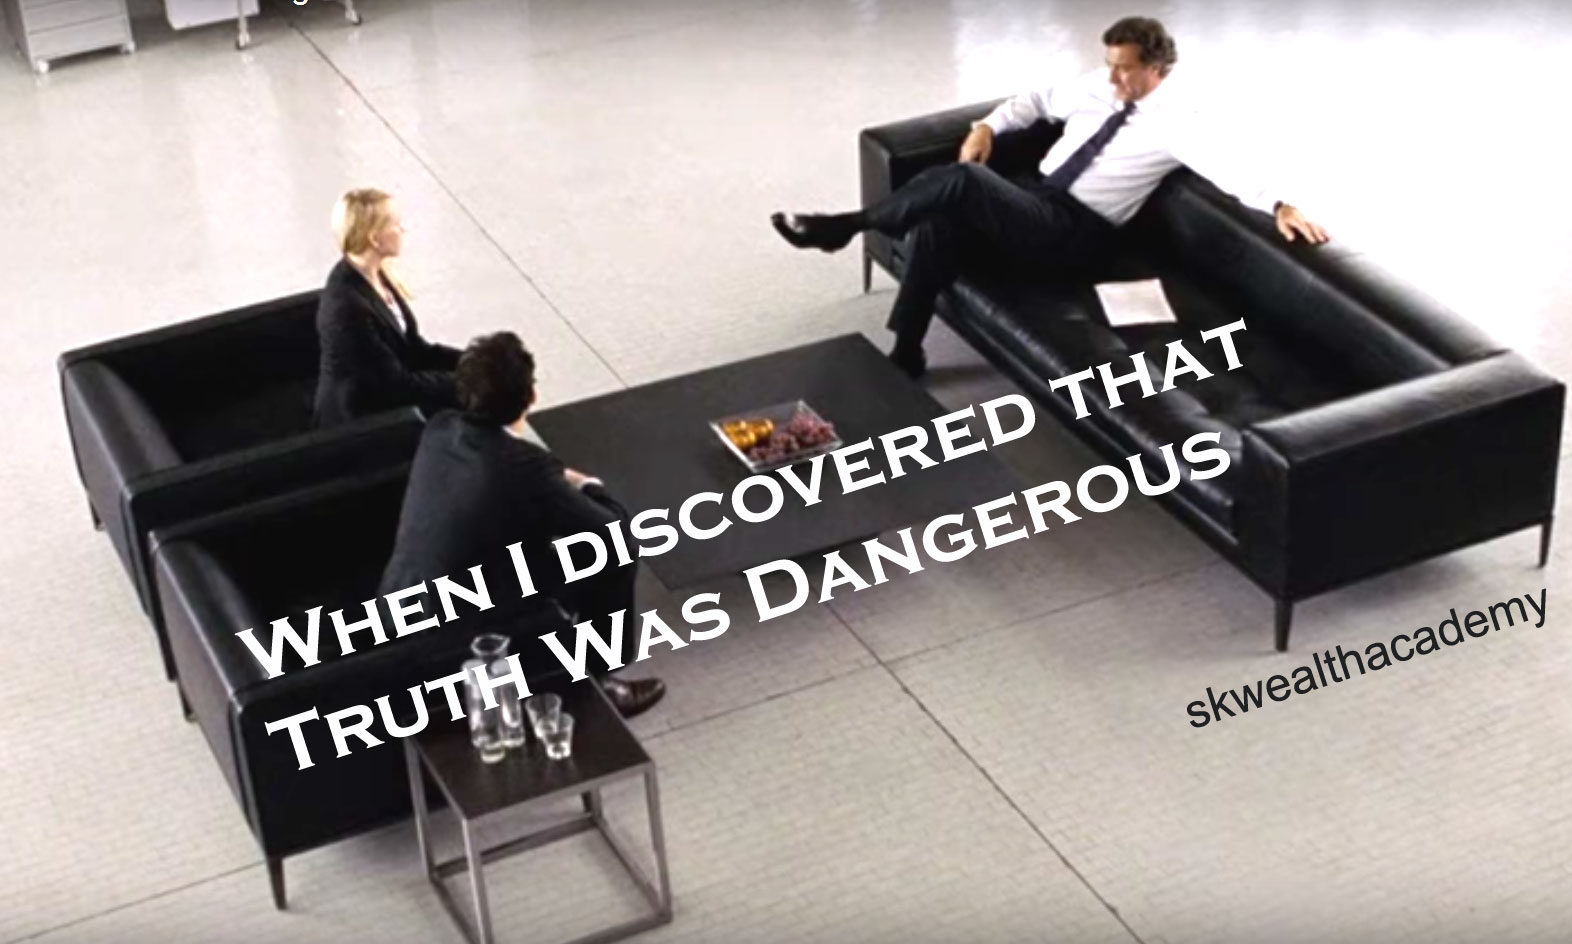 discovering truth is dangerous